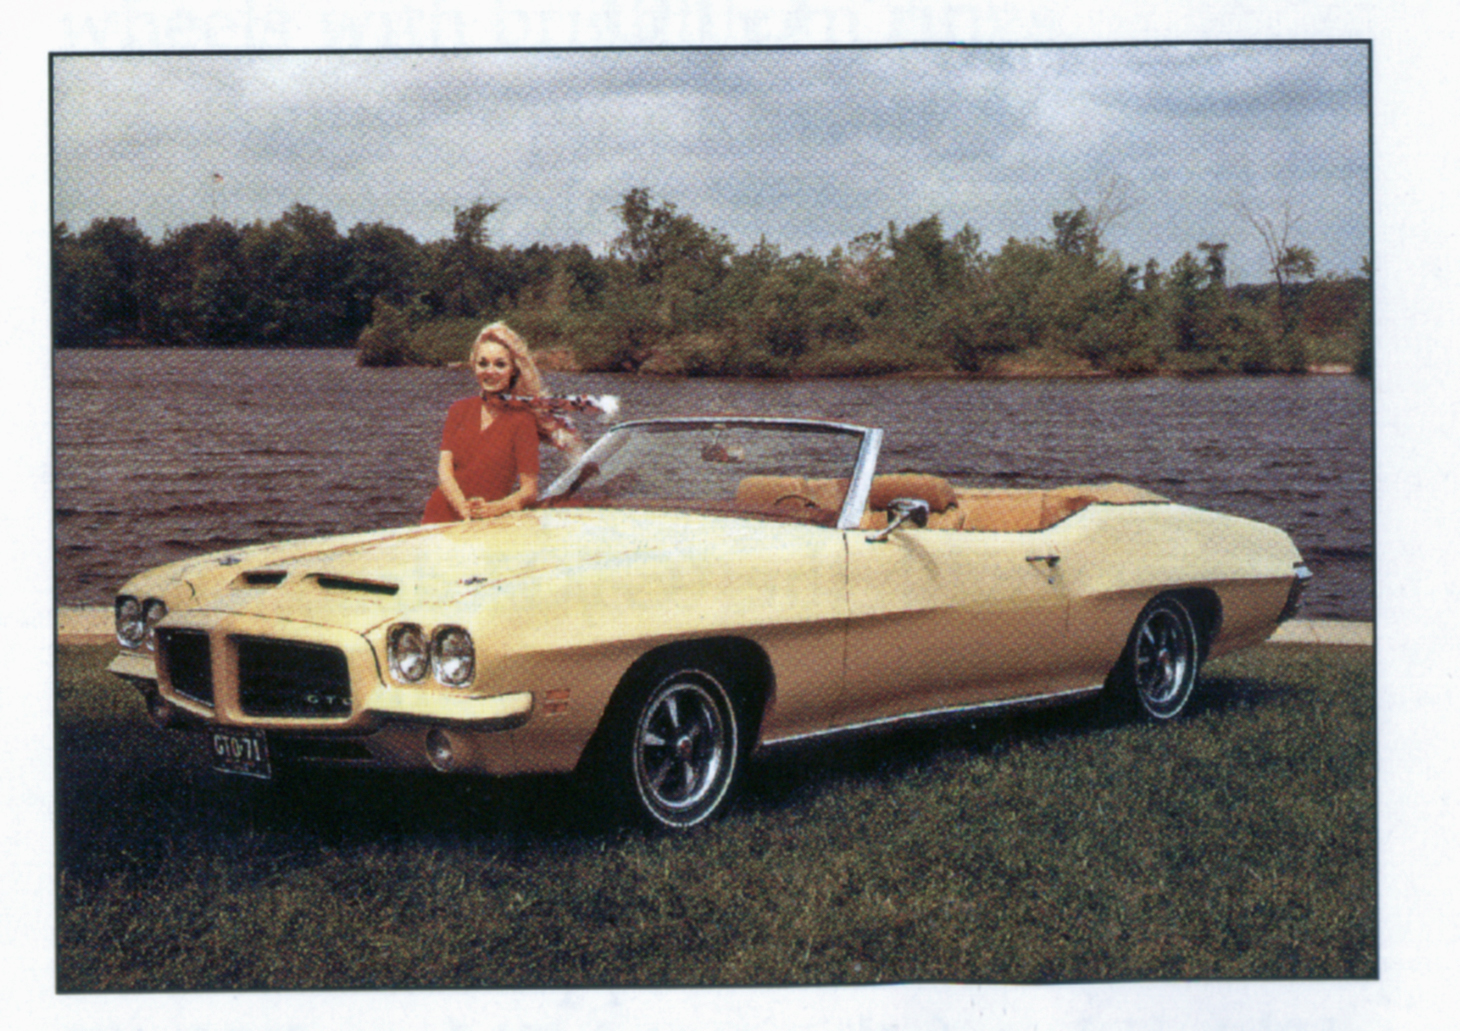 small resolution of a 1972 gto convertible has been a popular urban legend for decades due to a simple typo in an early pre 1975 pontiac motor division report